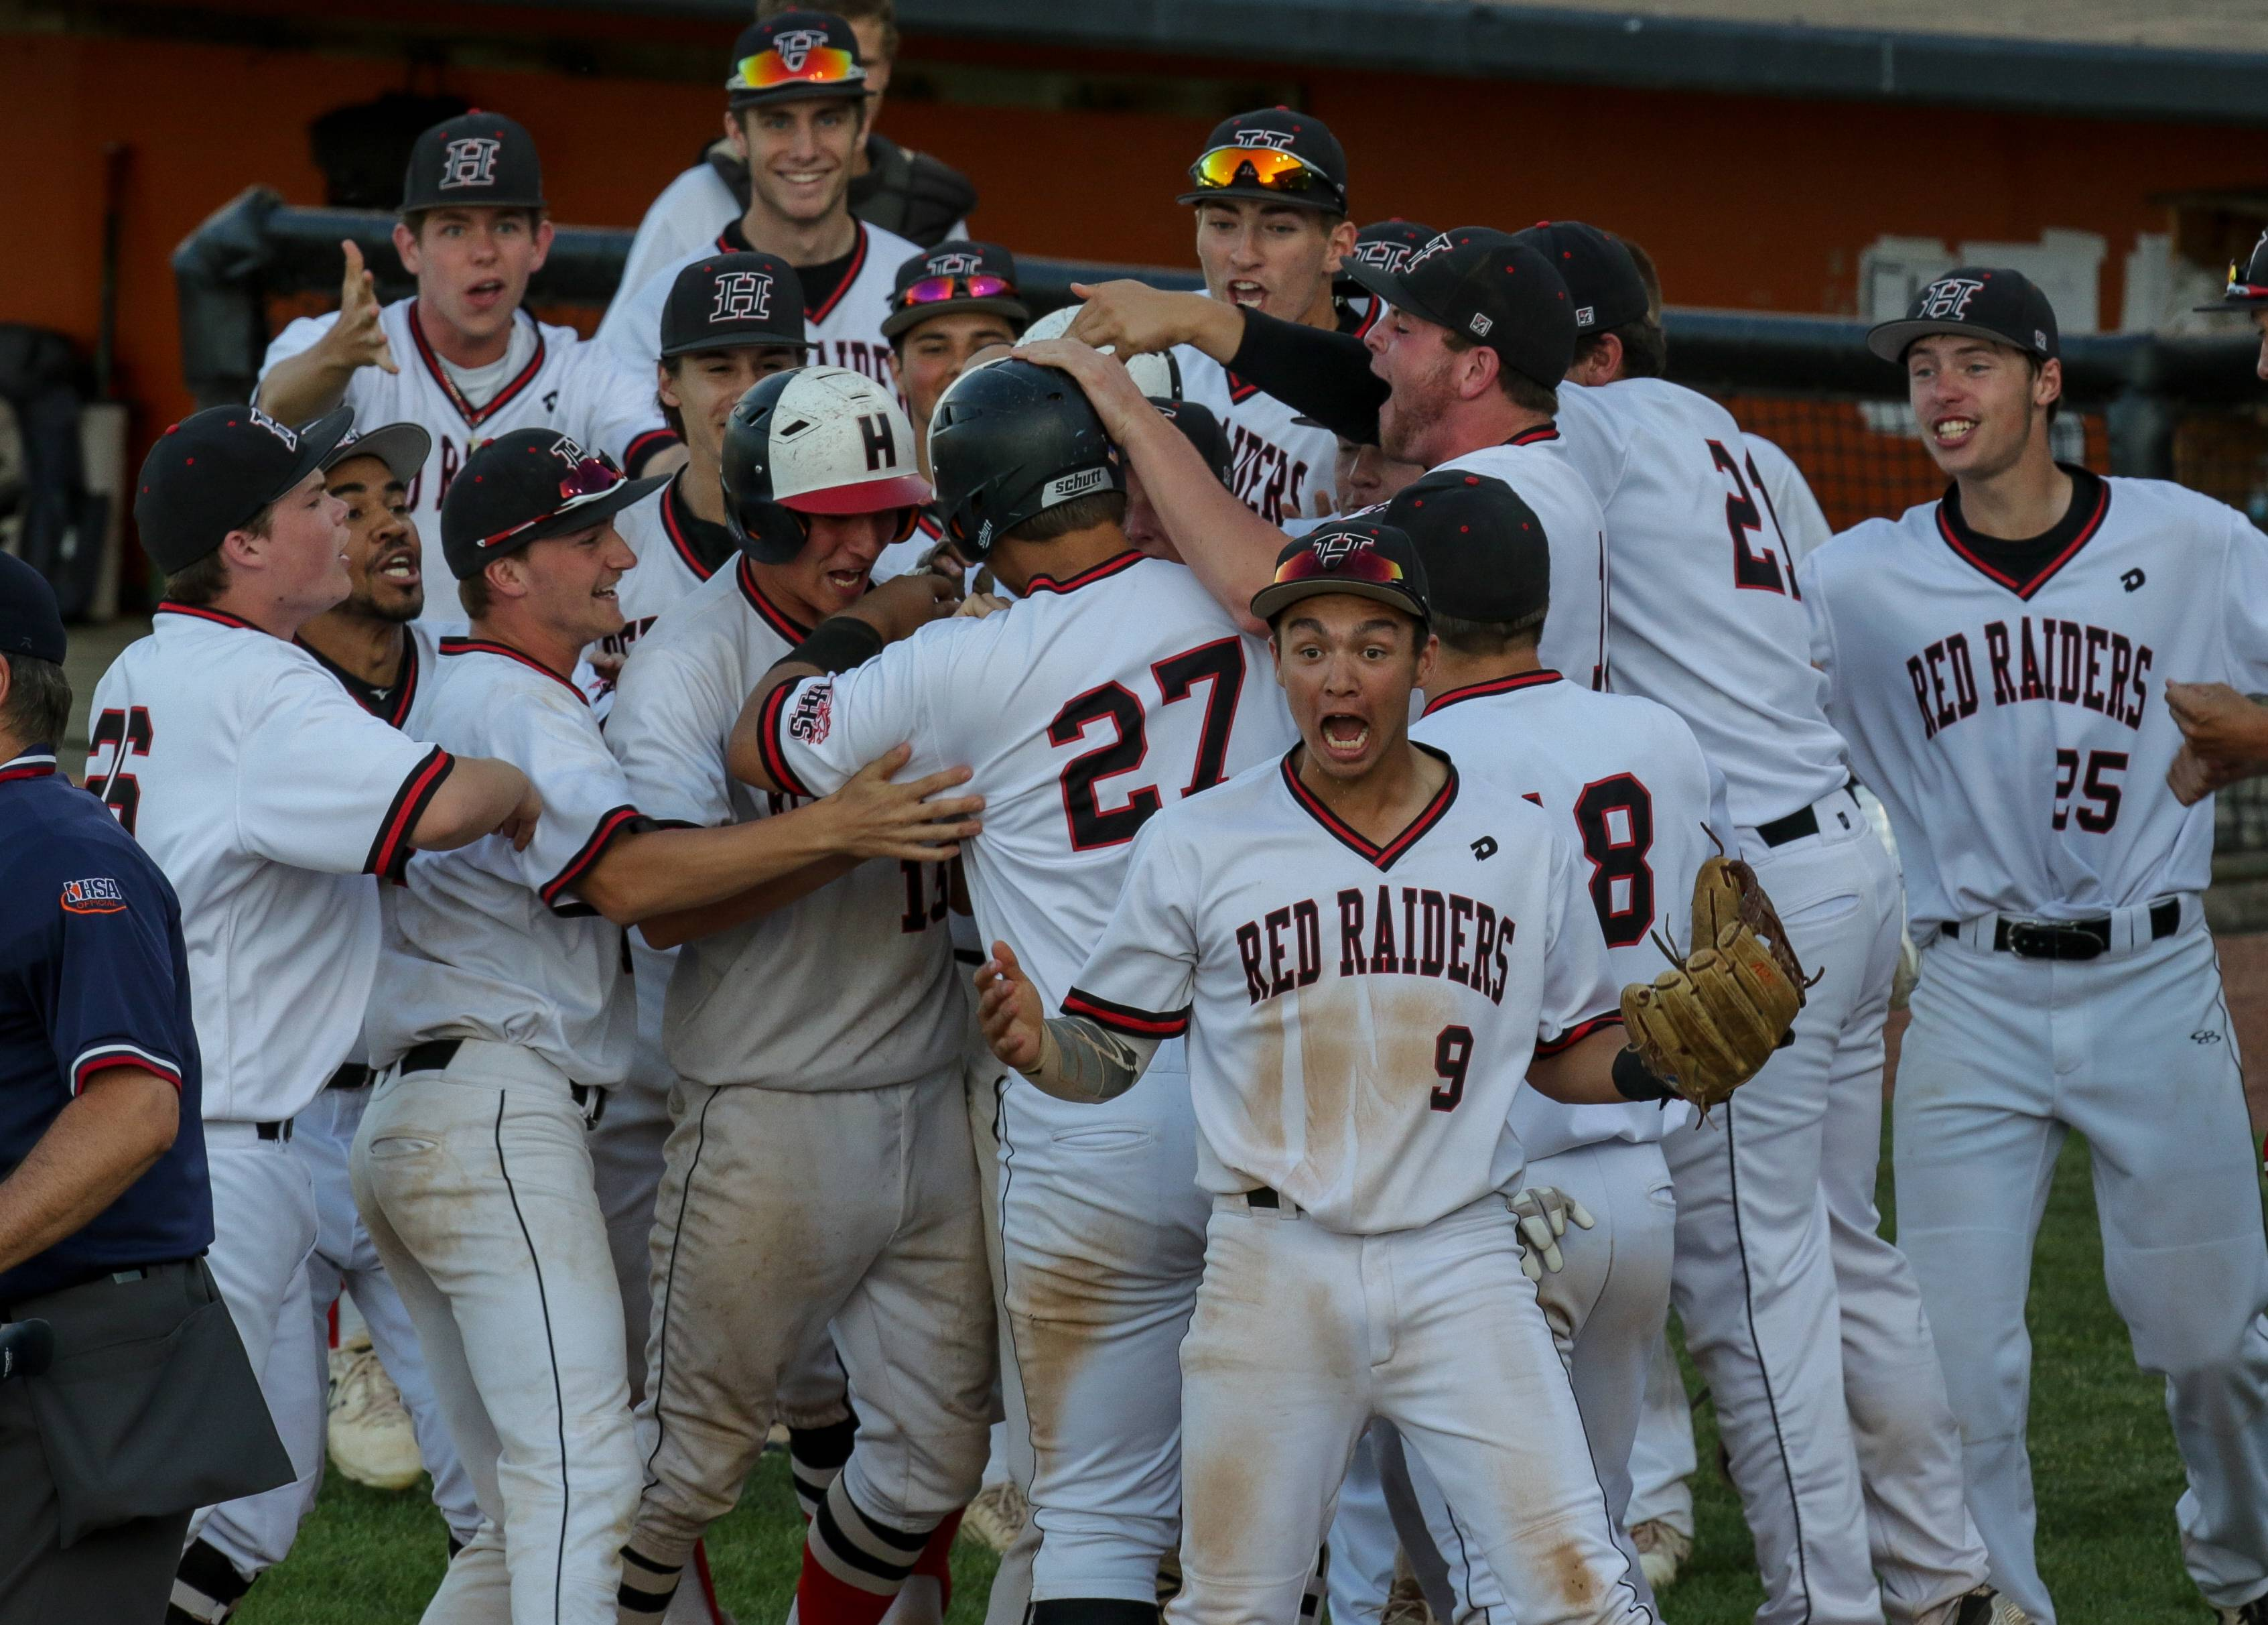 Matt Rodriguez (27) of Huntley is mobbed by teammates after hitting a home run in the 6th inning against Loyola in Class 4A sectional semifinal baseball at Boomers Stadium in Schaumburg.